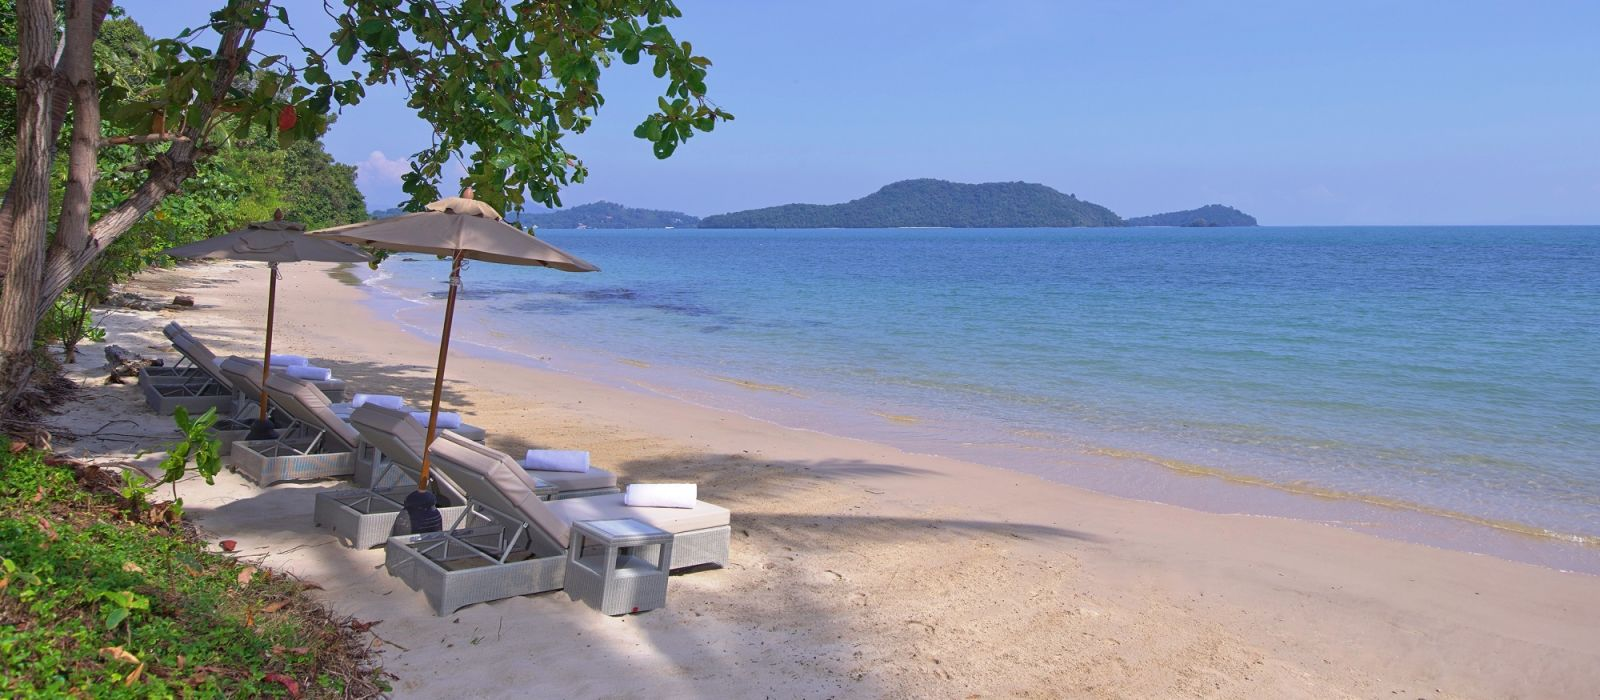 Luxury Spa Getaway in Thailand Tour Trip 3